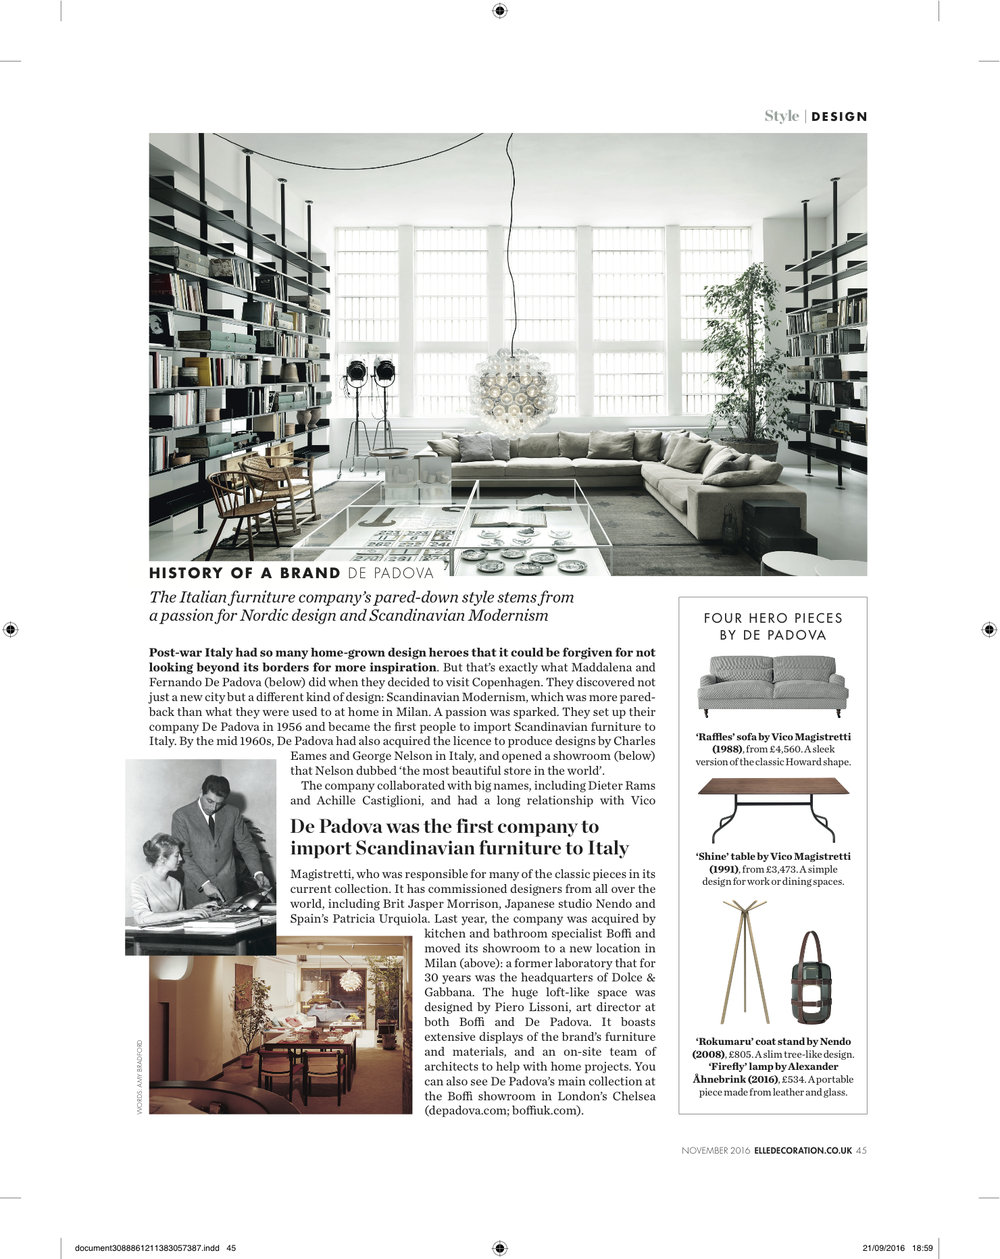 Affordable This Is A Selection Of My Work As Published In Elle Decoration And The Telegraph Magazine With Italian Interior Design Company Names